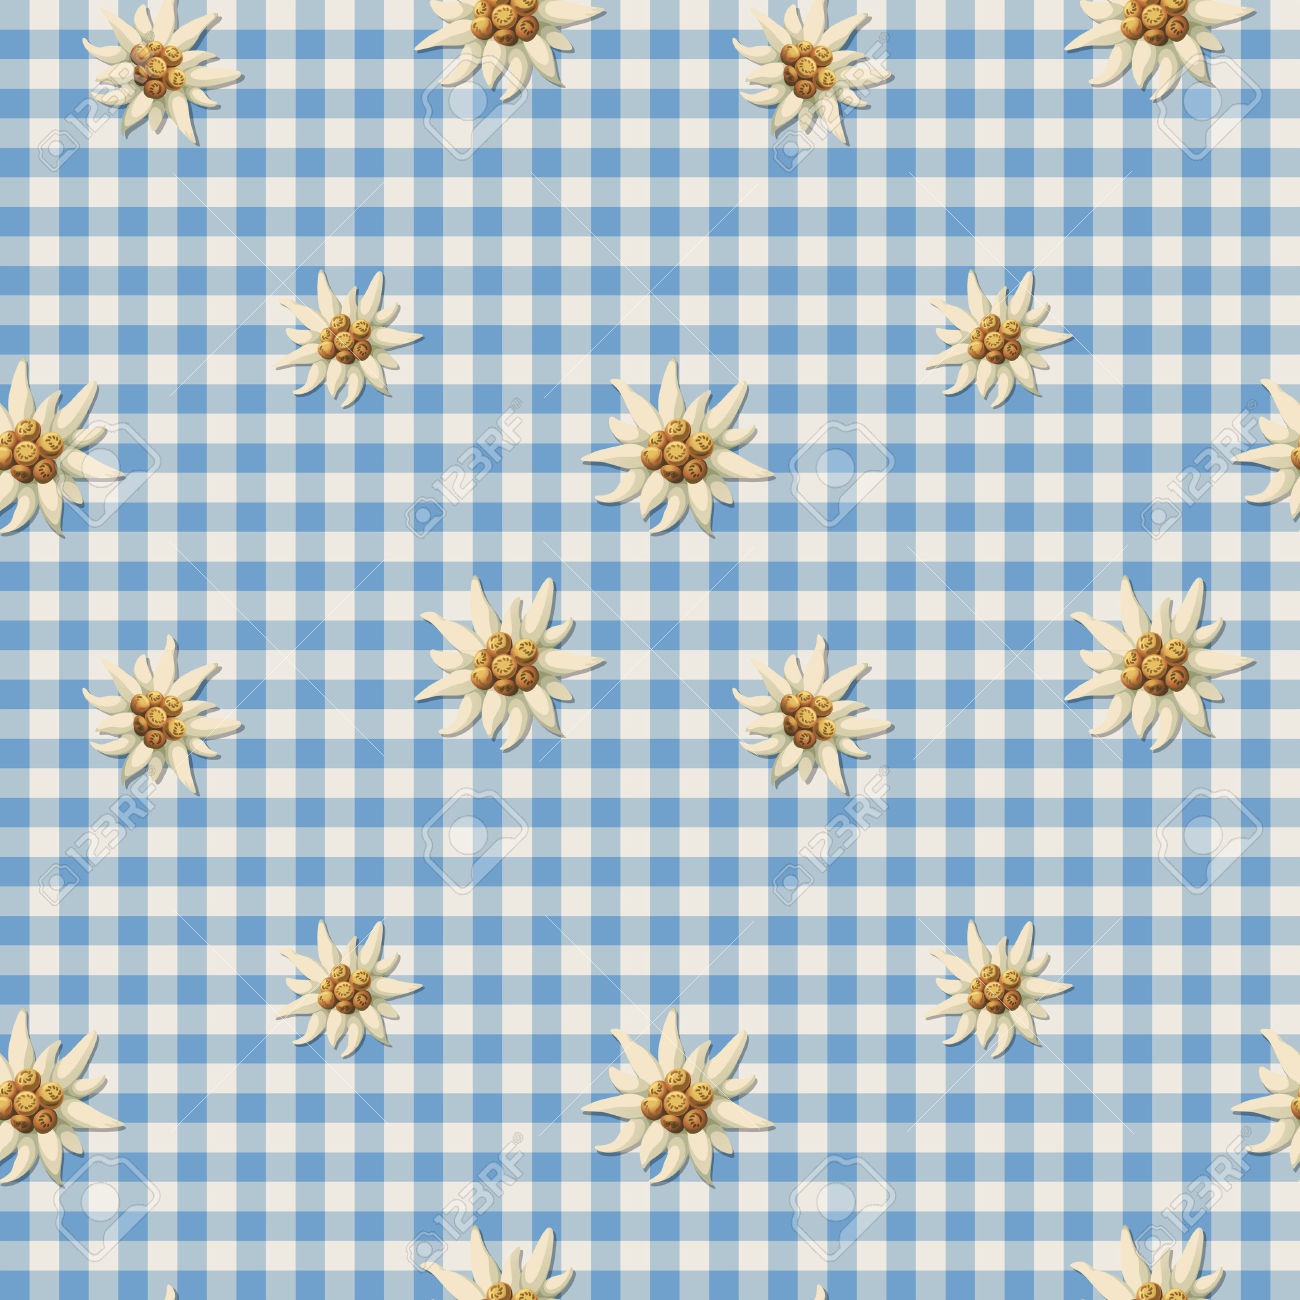 Tiling Alpine Pattern With Edelweiss Royalty Free Cliparts.